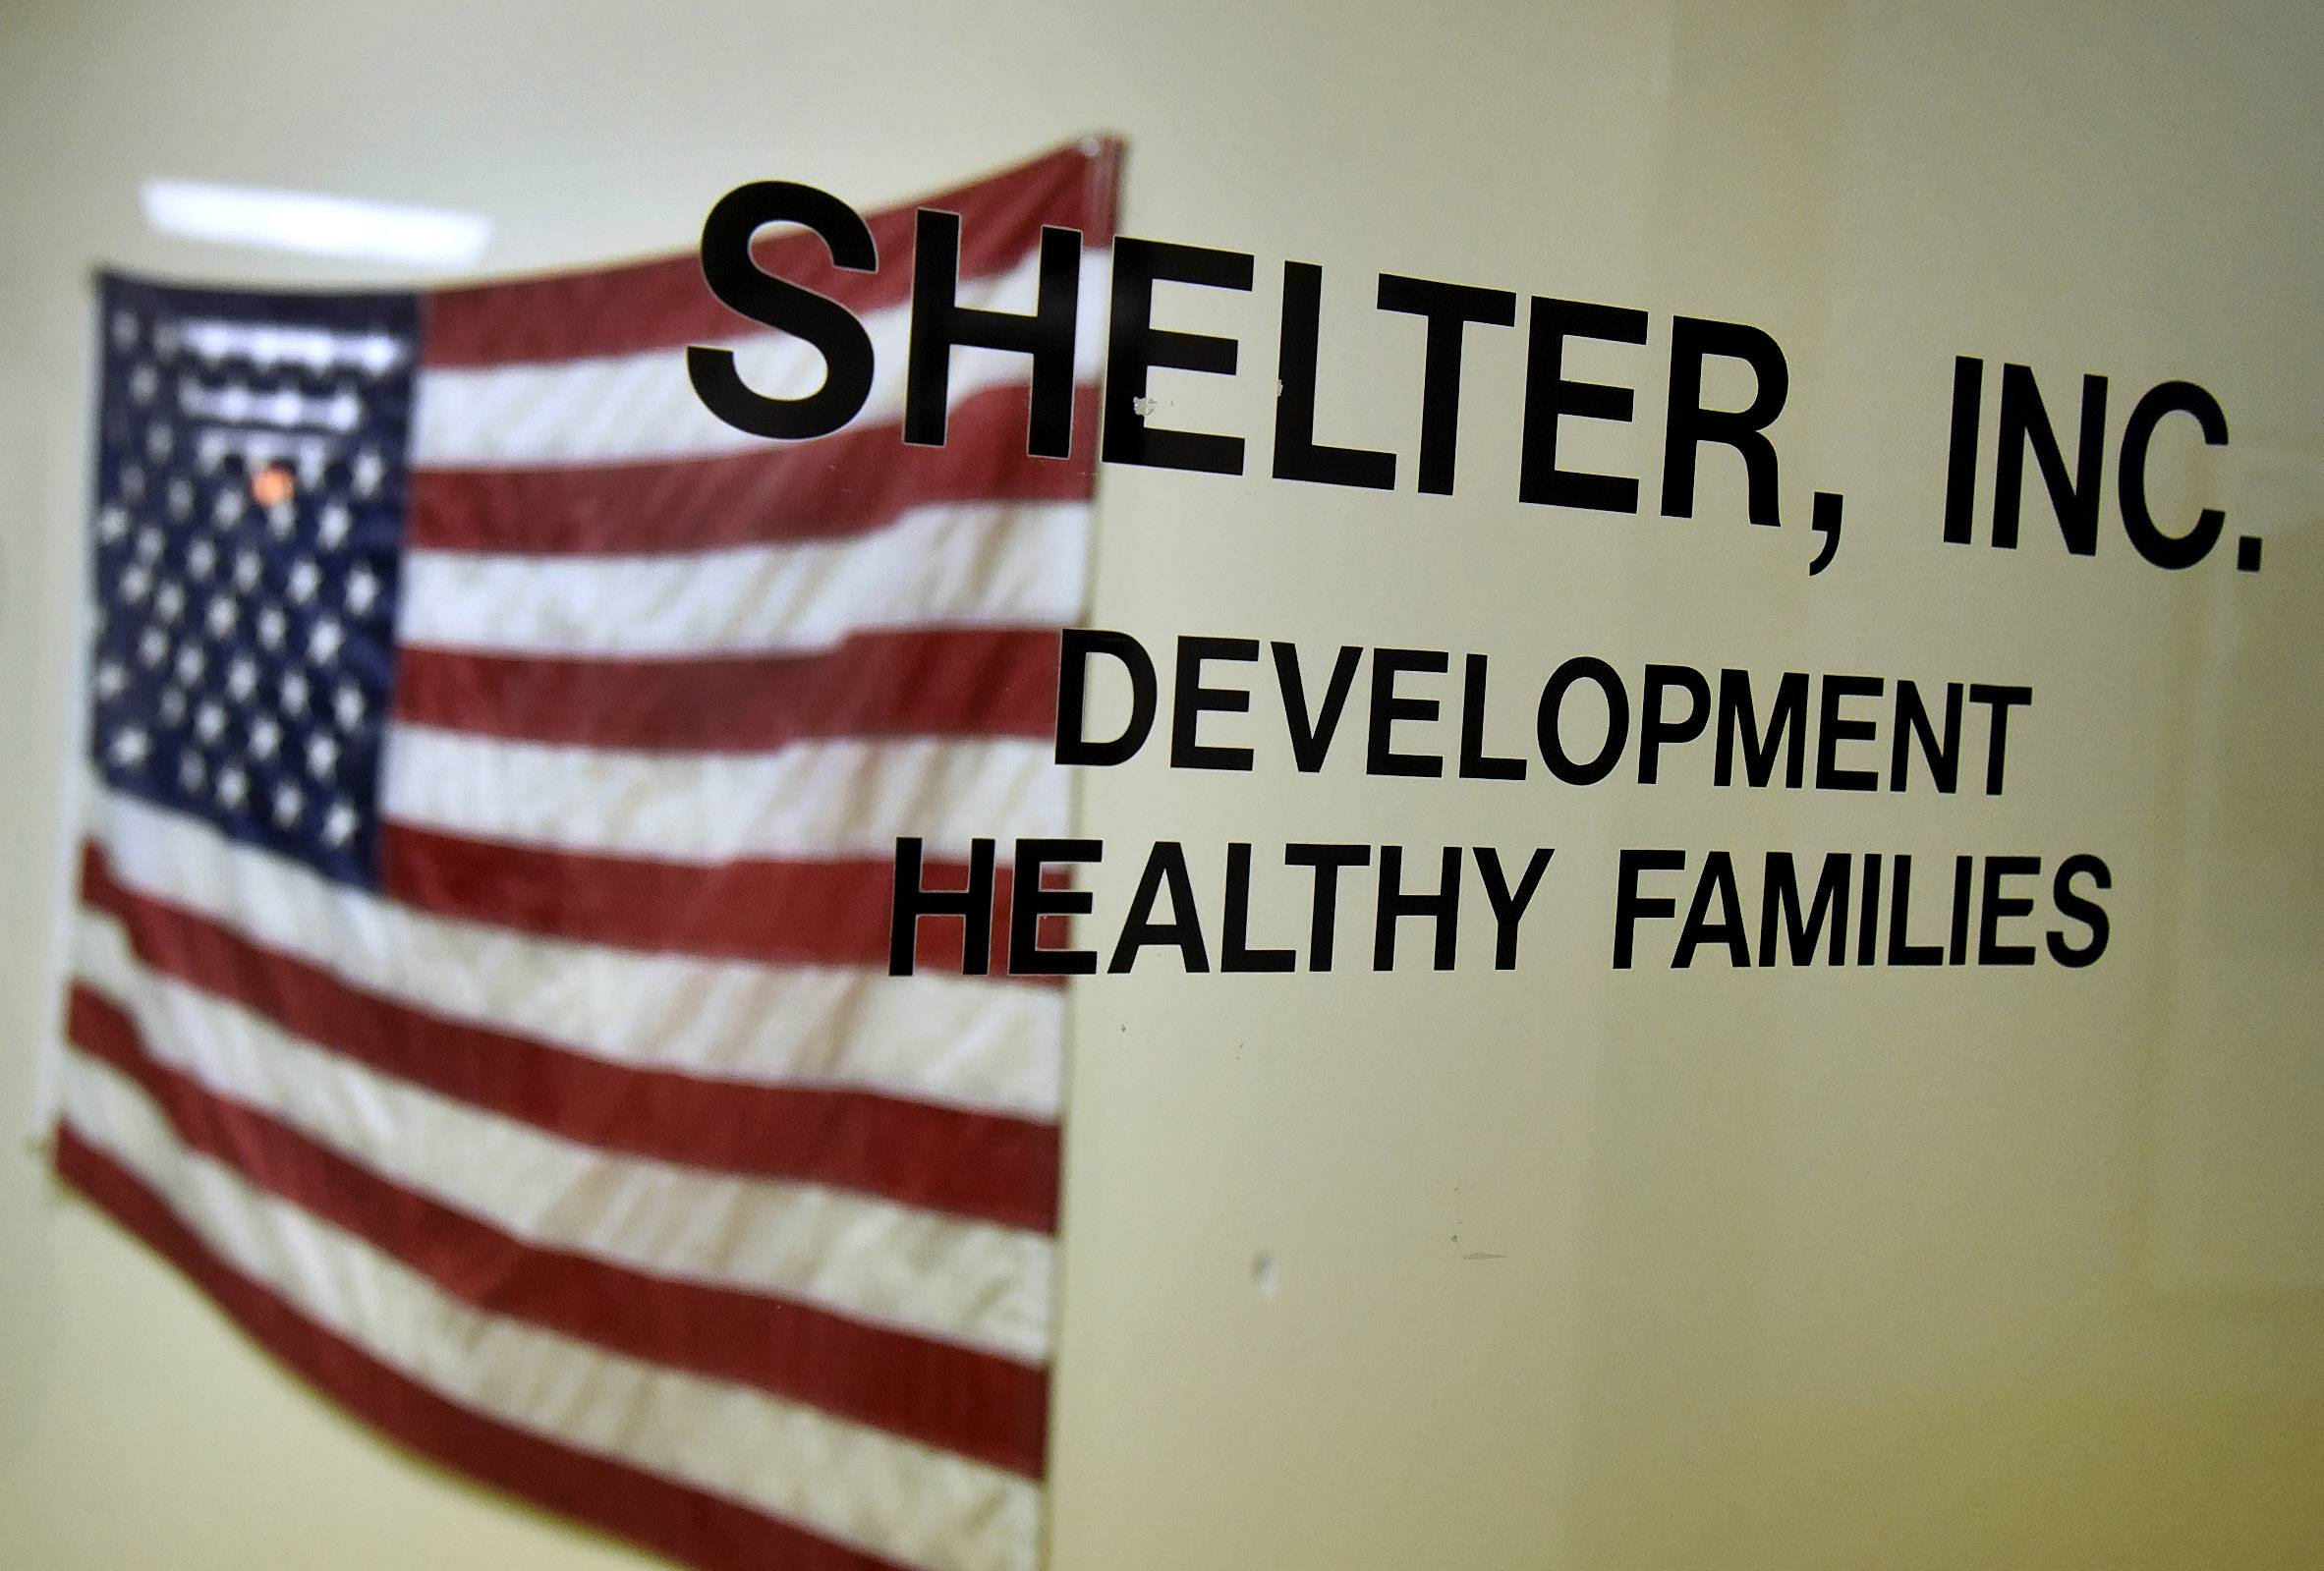 Shelter Inc., a child welfare agency in Arlington Heights, may have to discontinue its Healthy Families program due to the state budget stalemate.